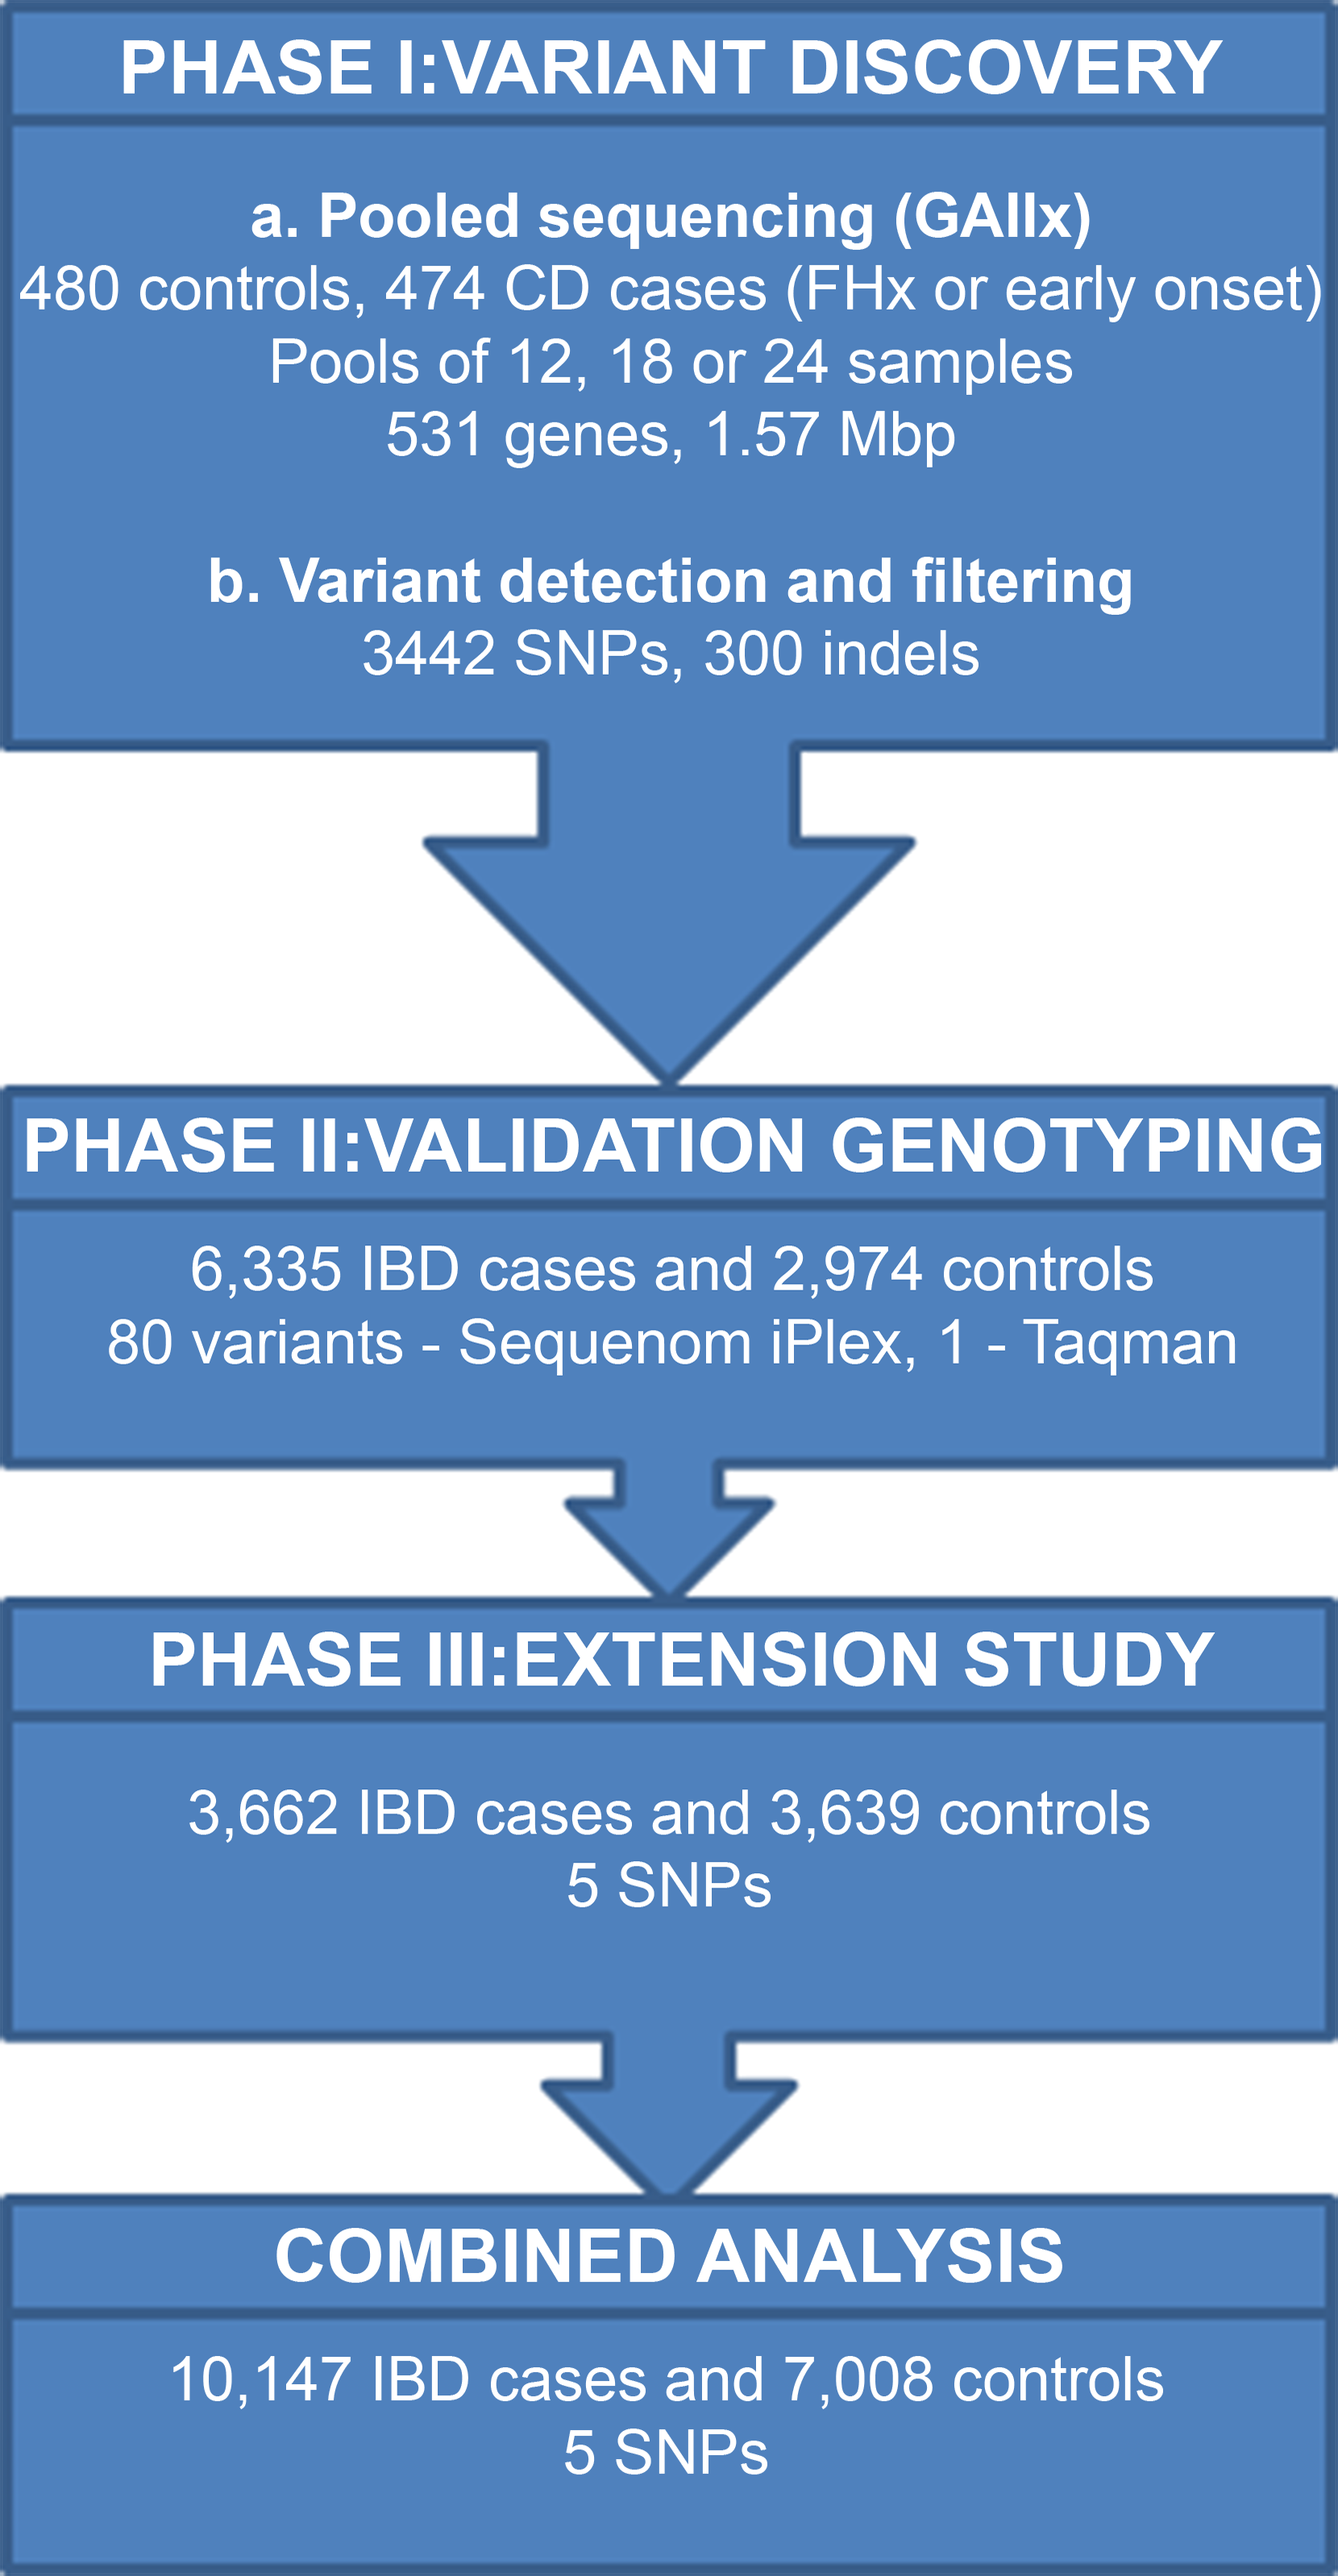 Summary of strategy for detecting rare variants associated with IBD.